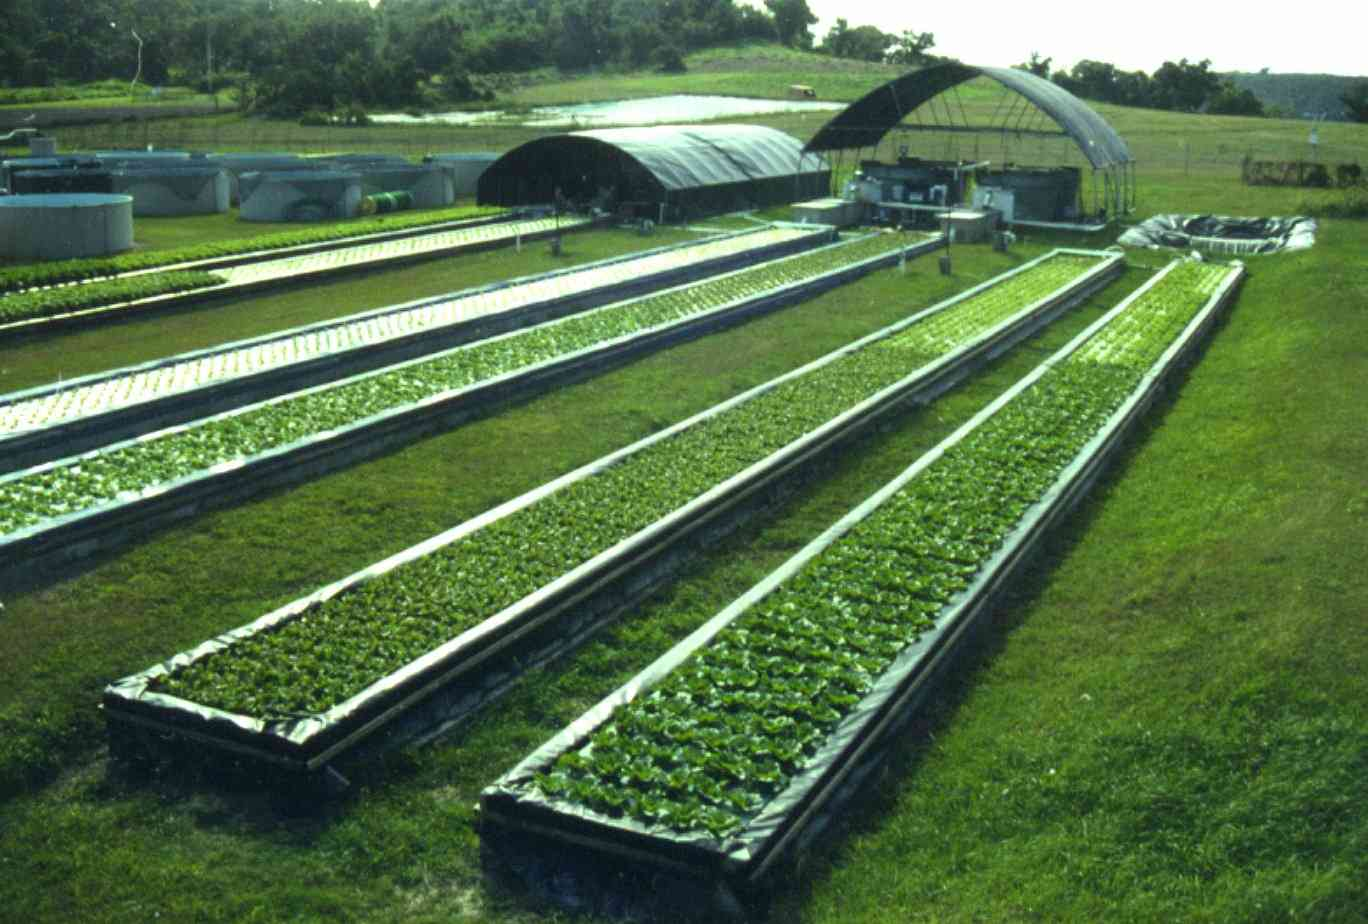 Choosing the perfect place for an aquaponic system